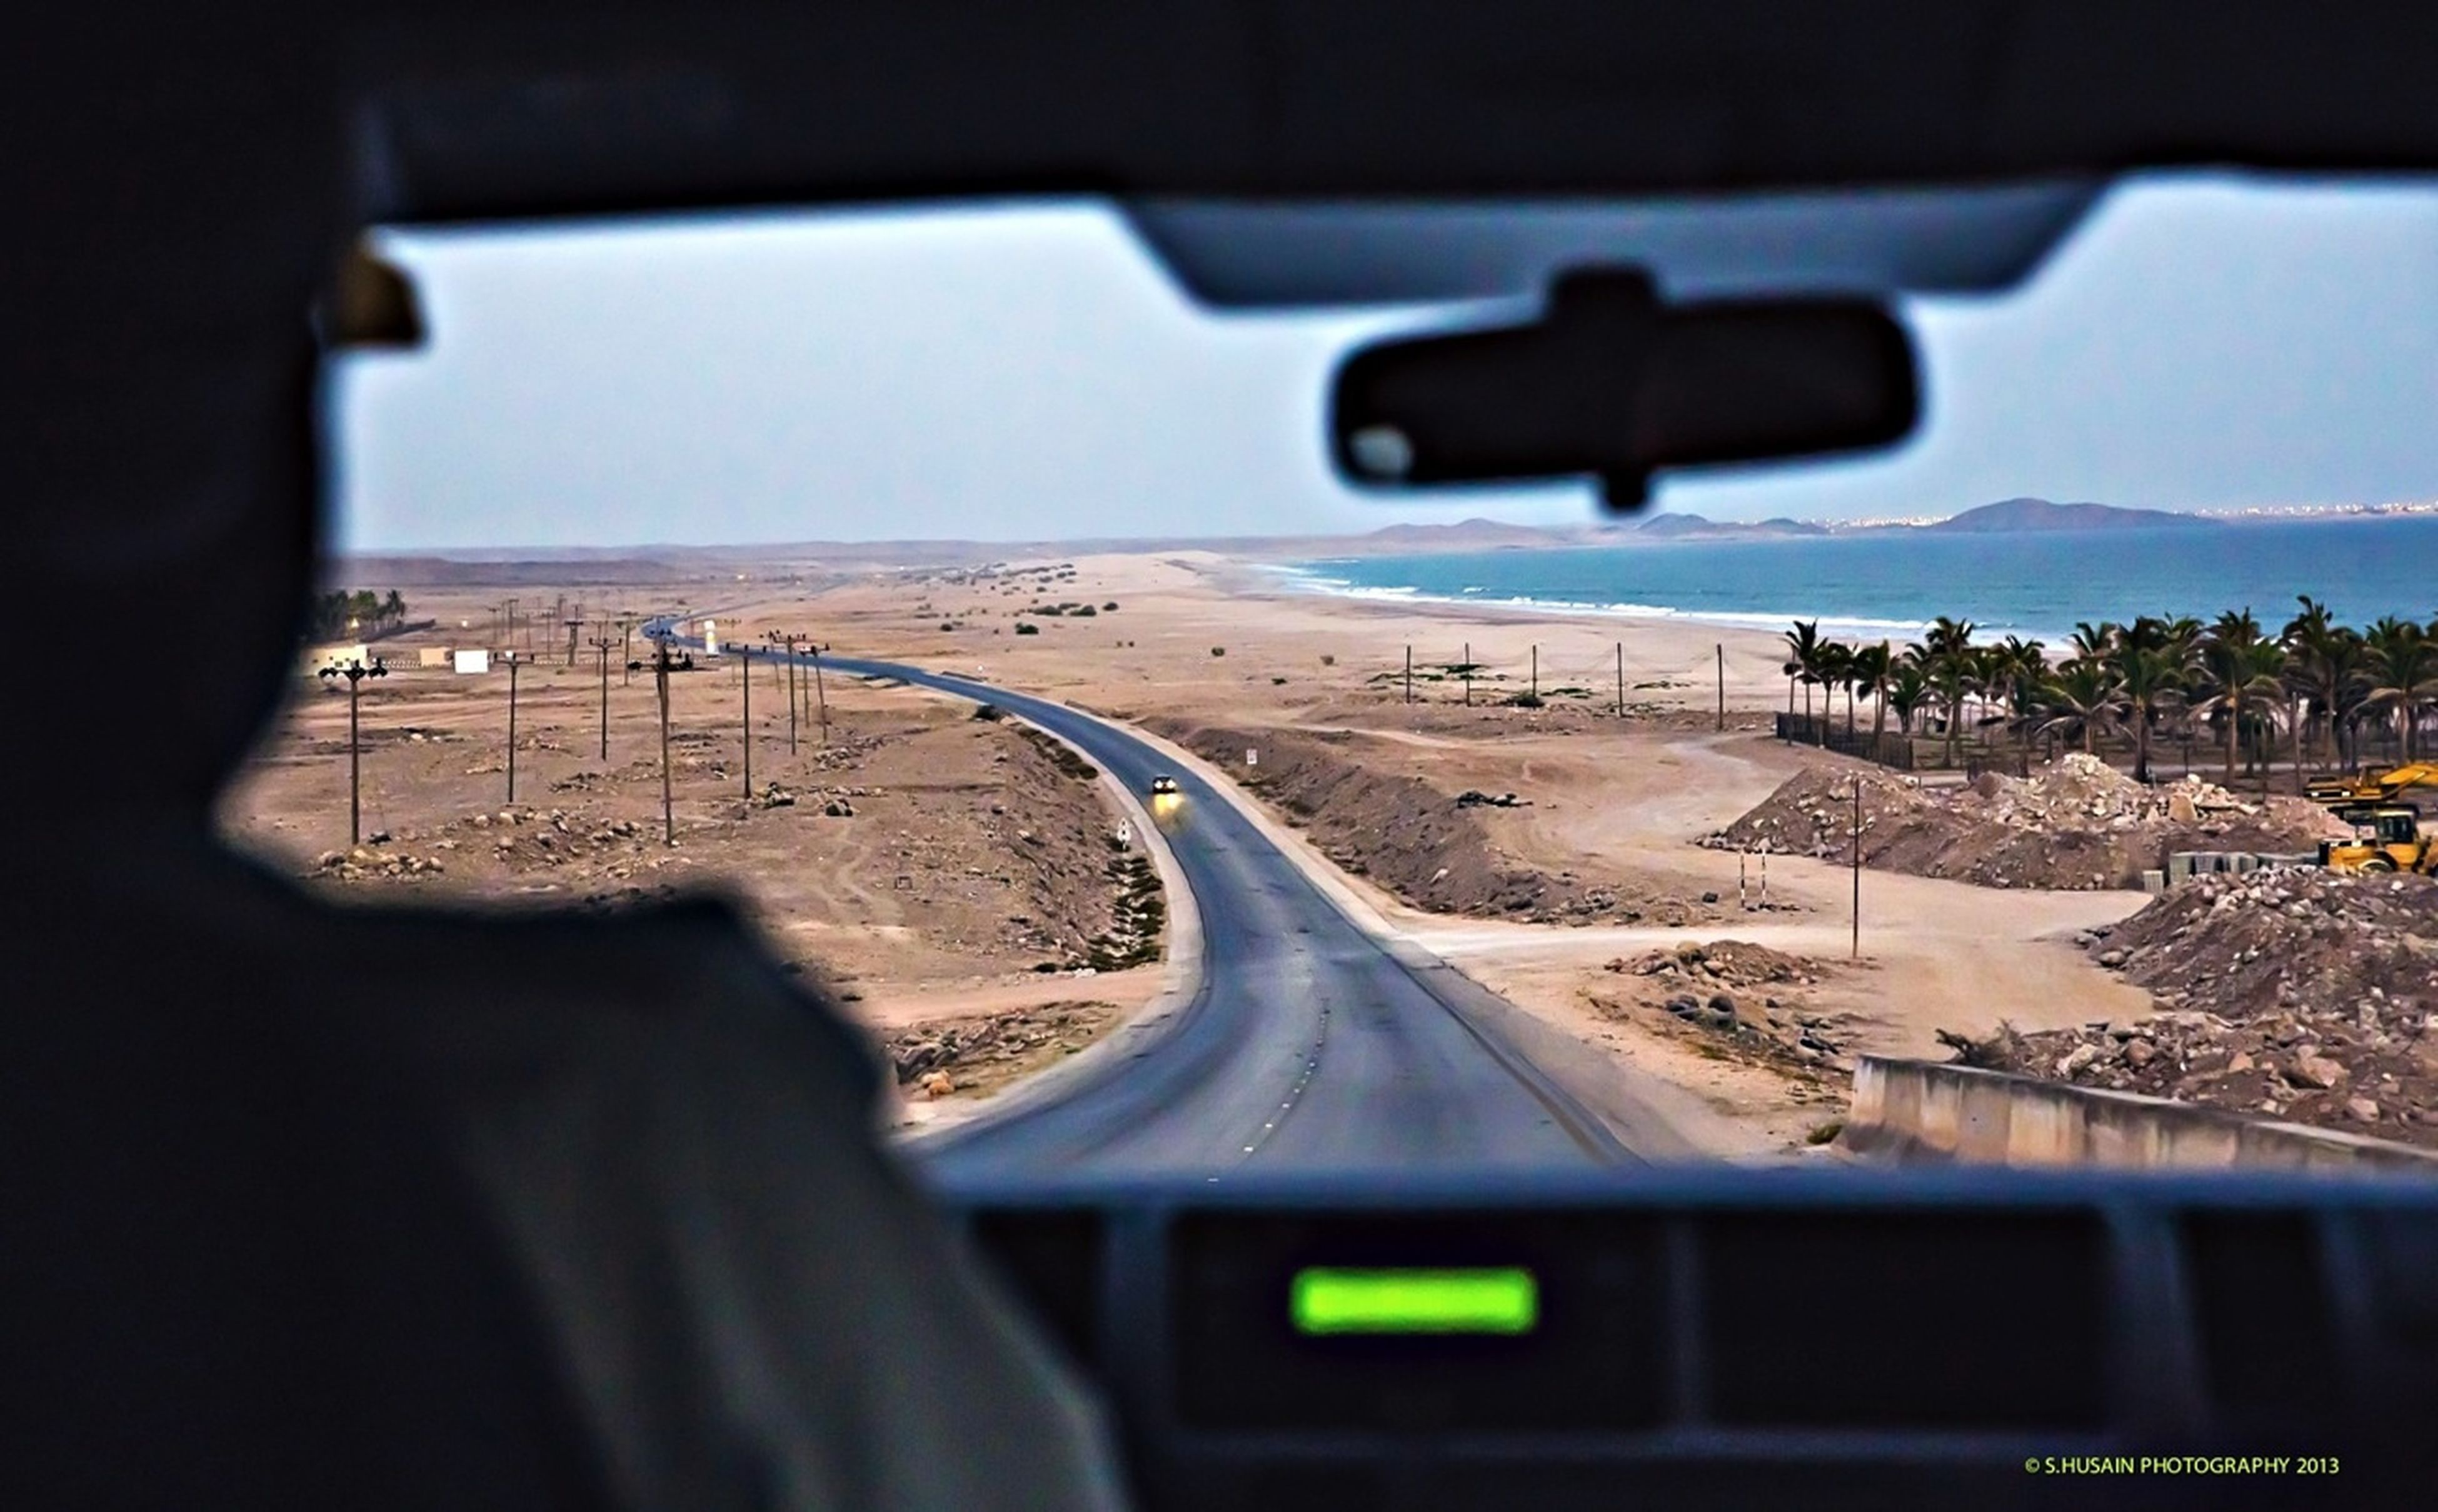 transportation, vehicle interior, mode of transport, landscape, travel, land vehicle, car, road, sky, part of, transparent, cropped, journey, window, sea, glass - material, nature, day, windshield, horizon over water